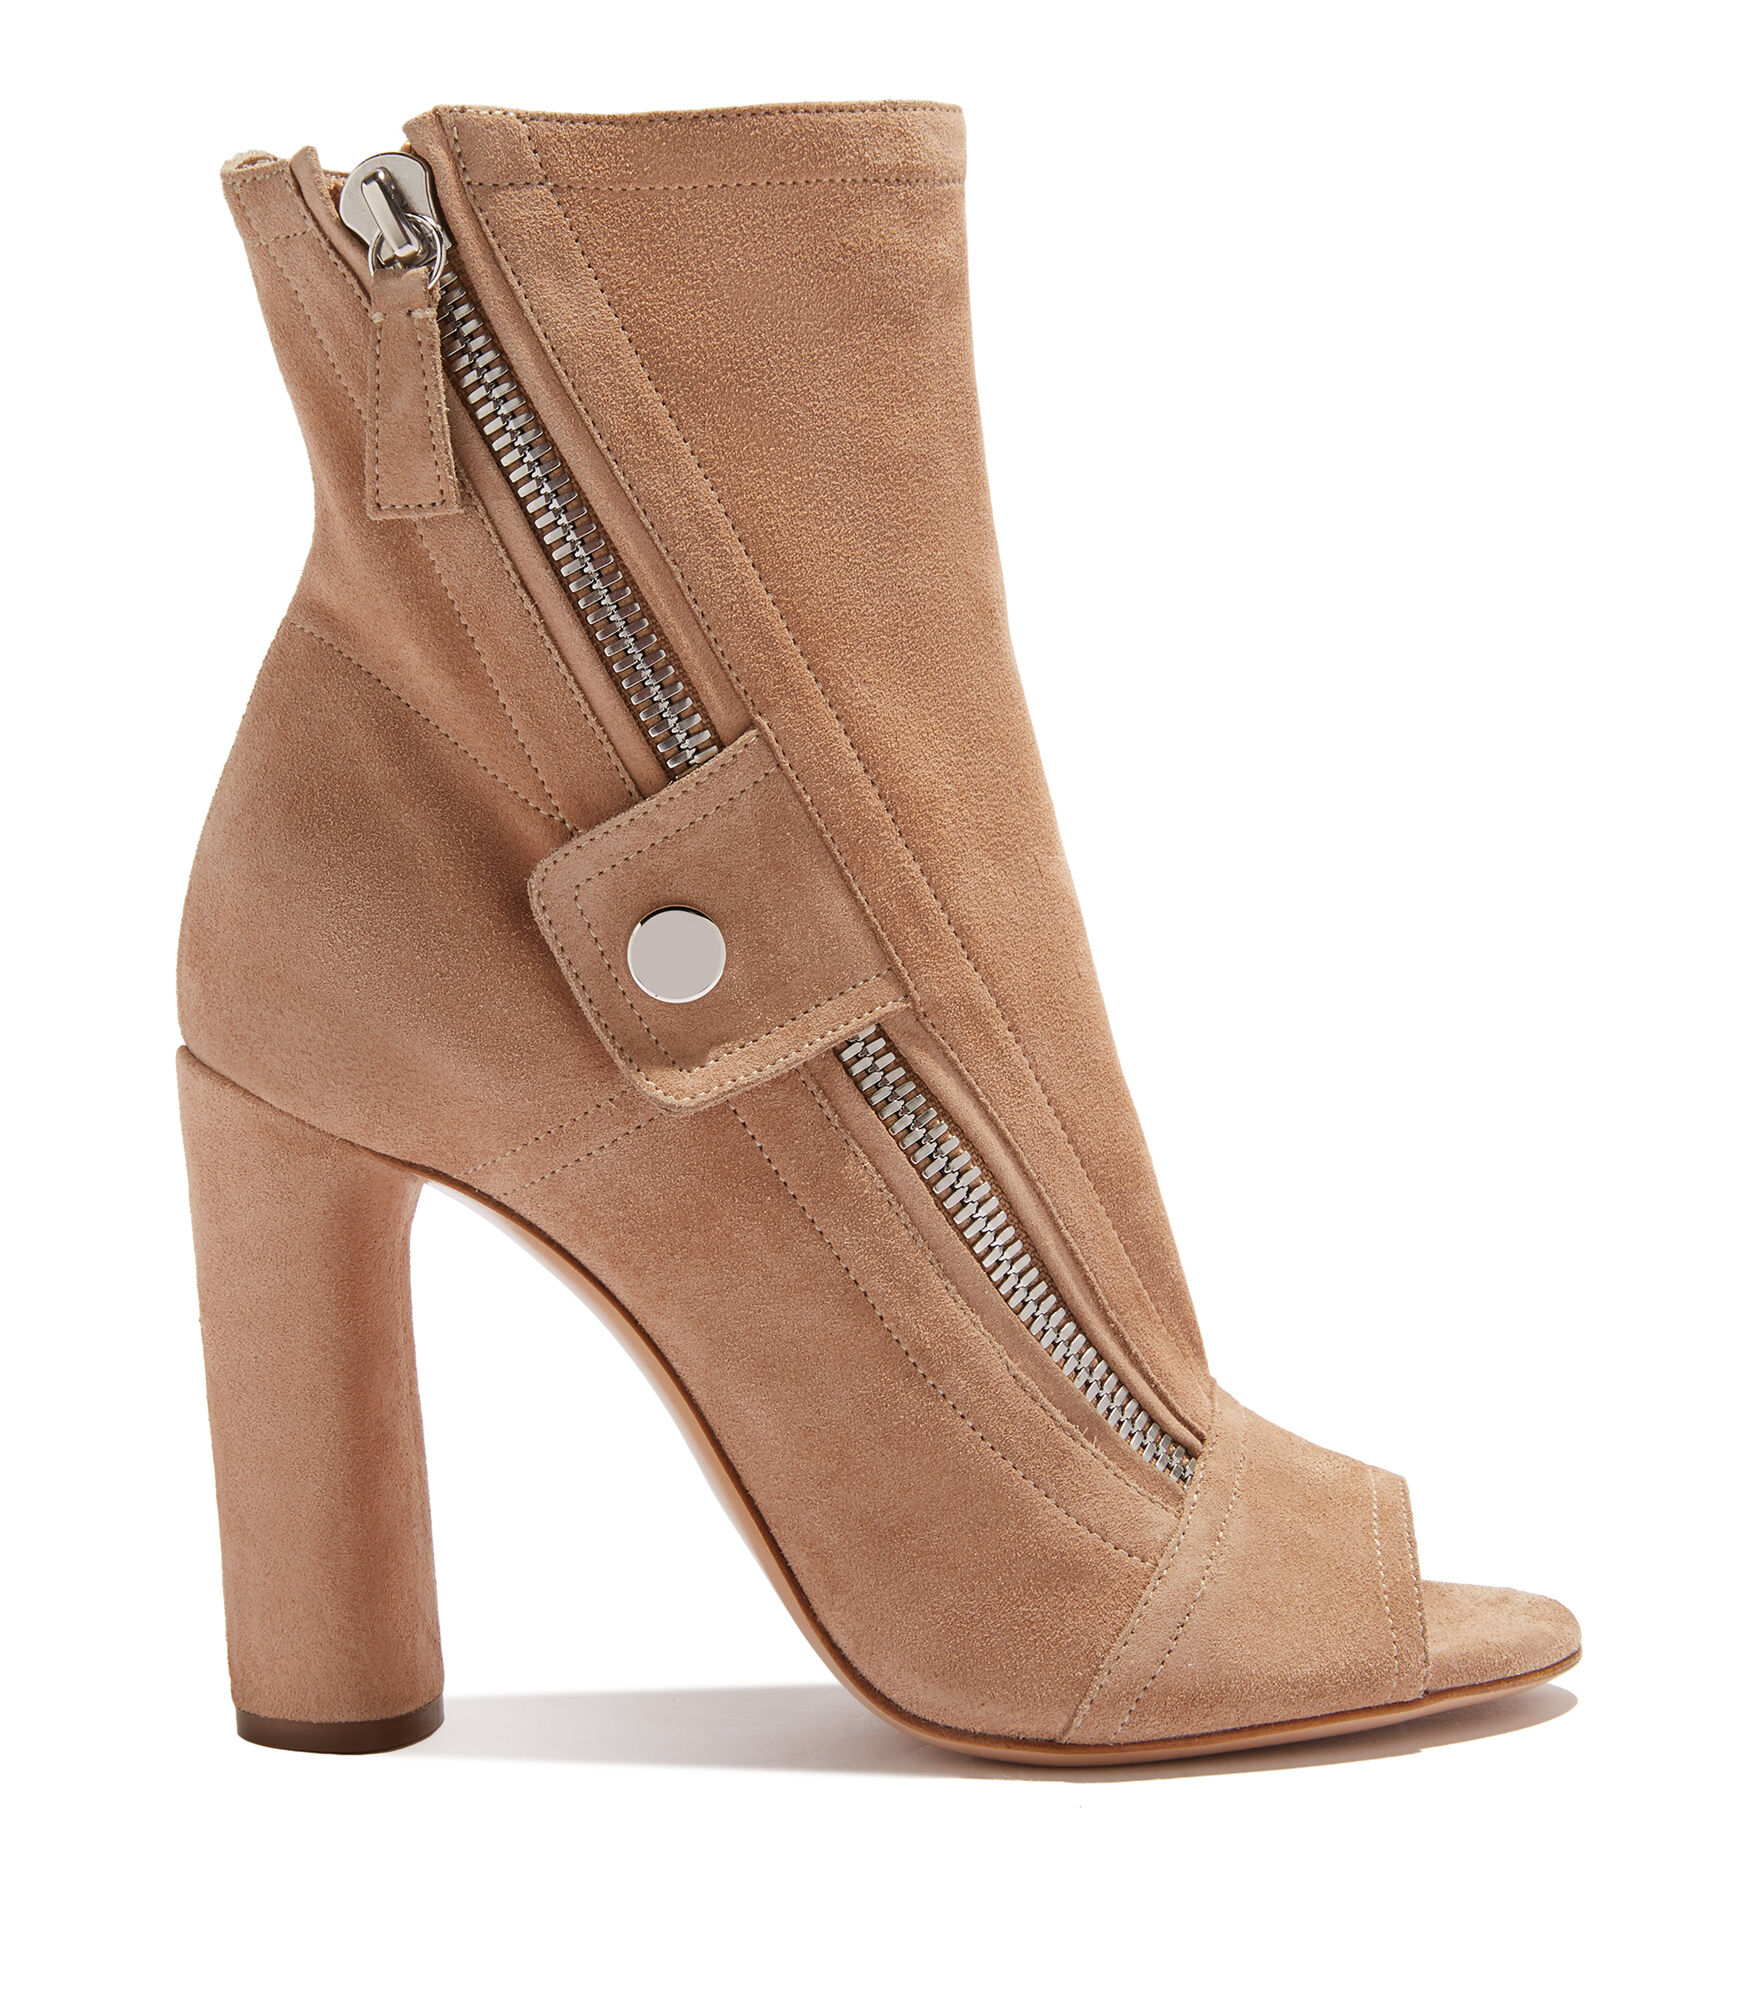 Casadei Ankle Boots - Selena Dafne Suede